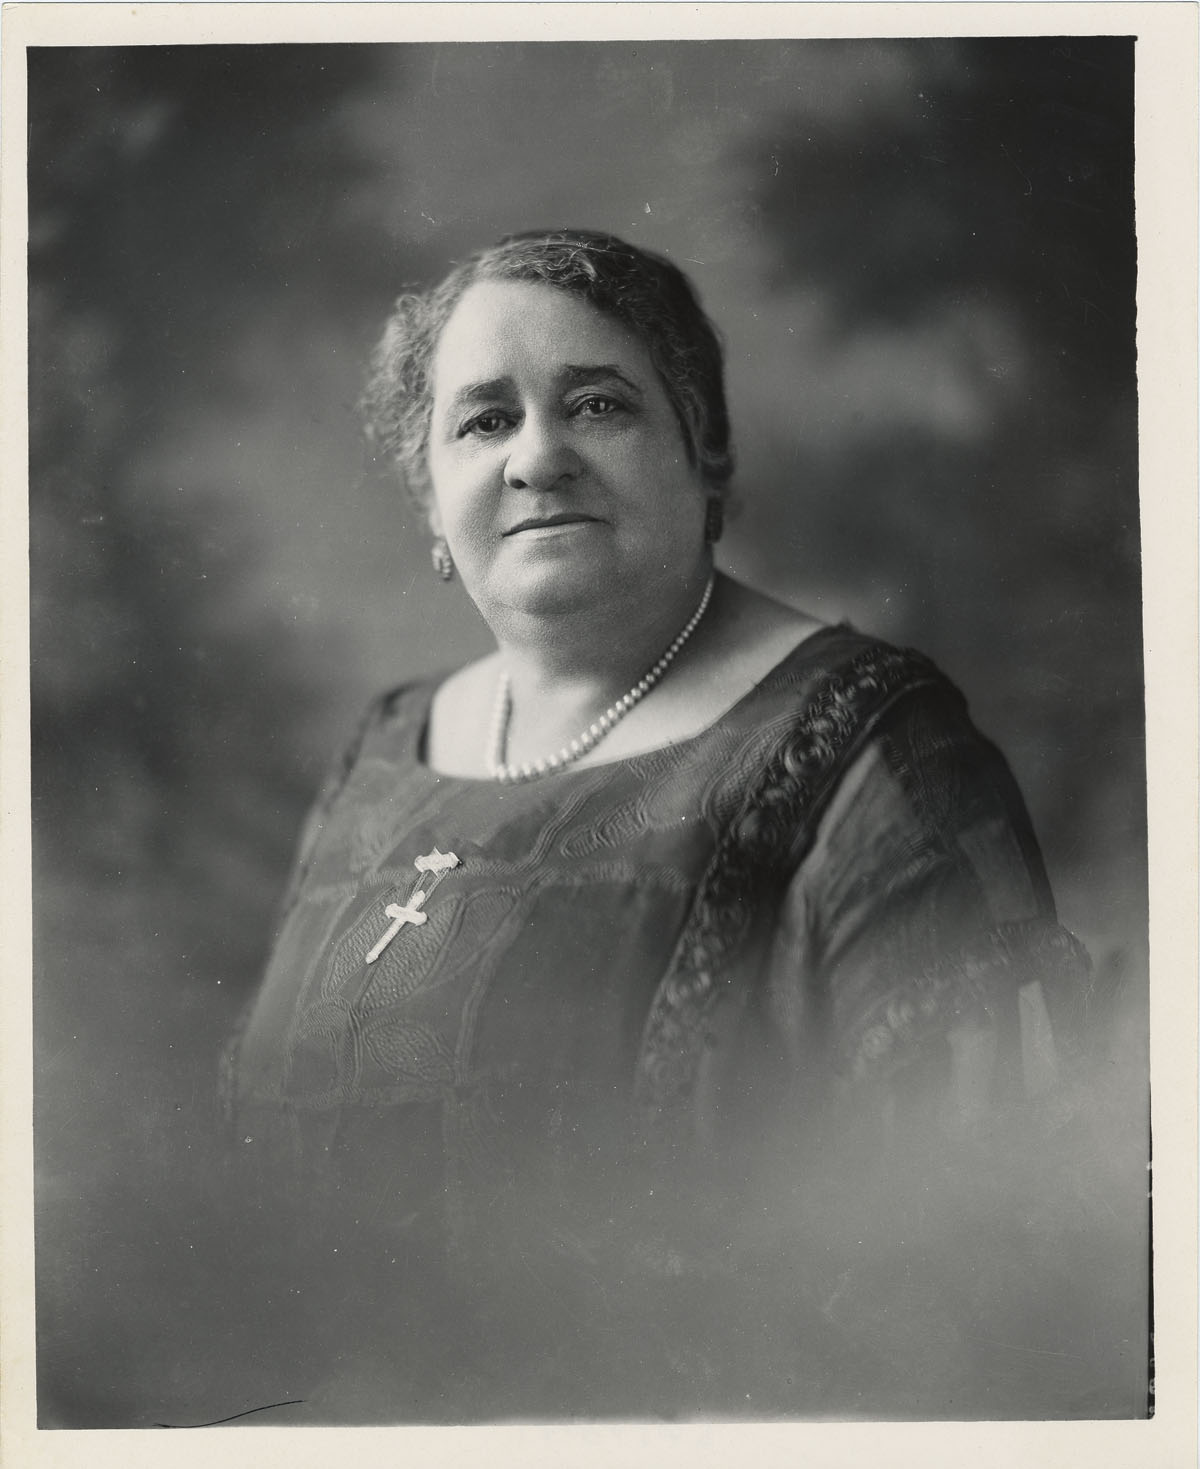 A portrait of a woman. She wears a cross on a necklace.